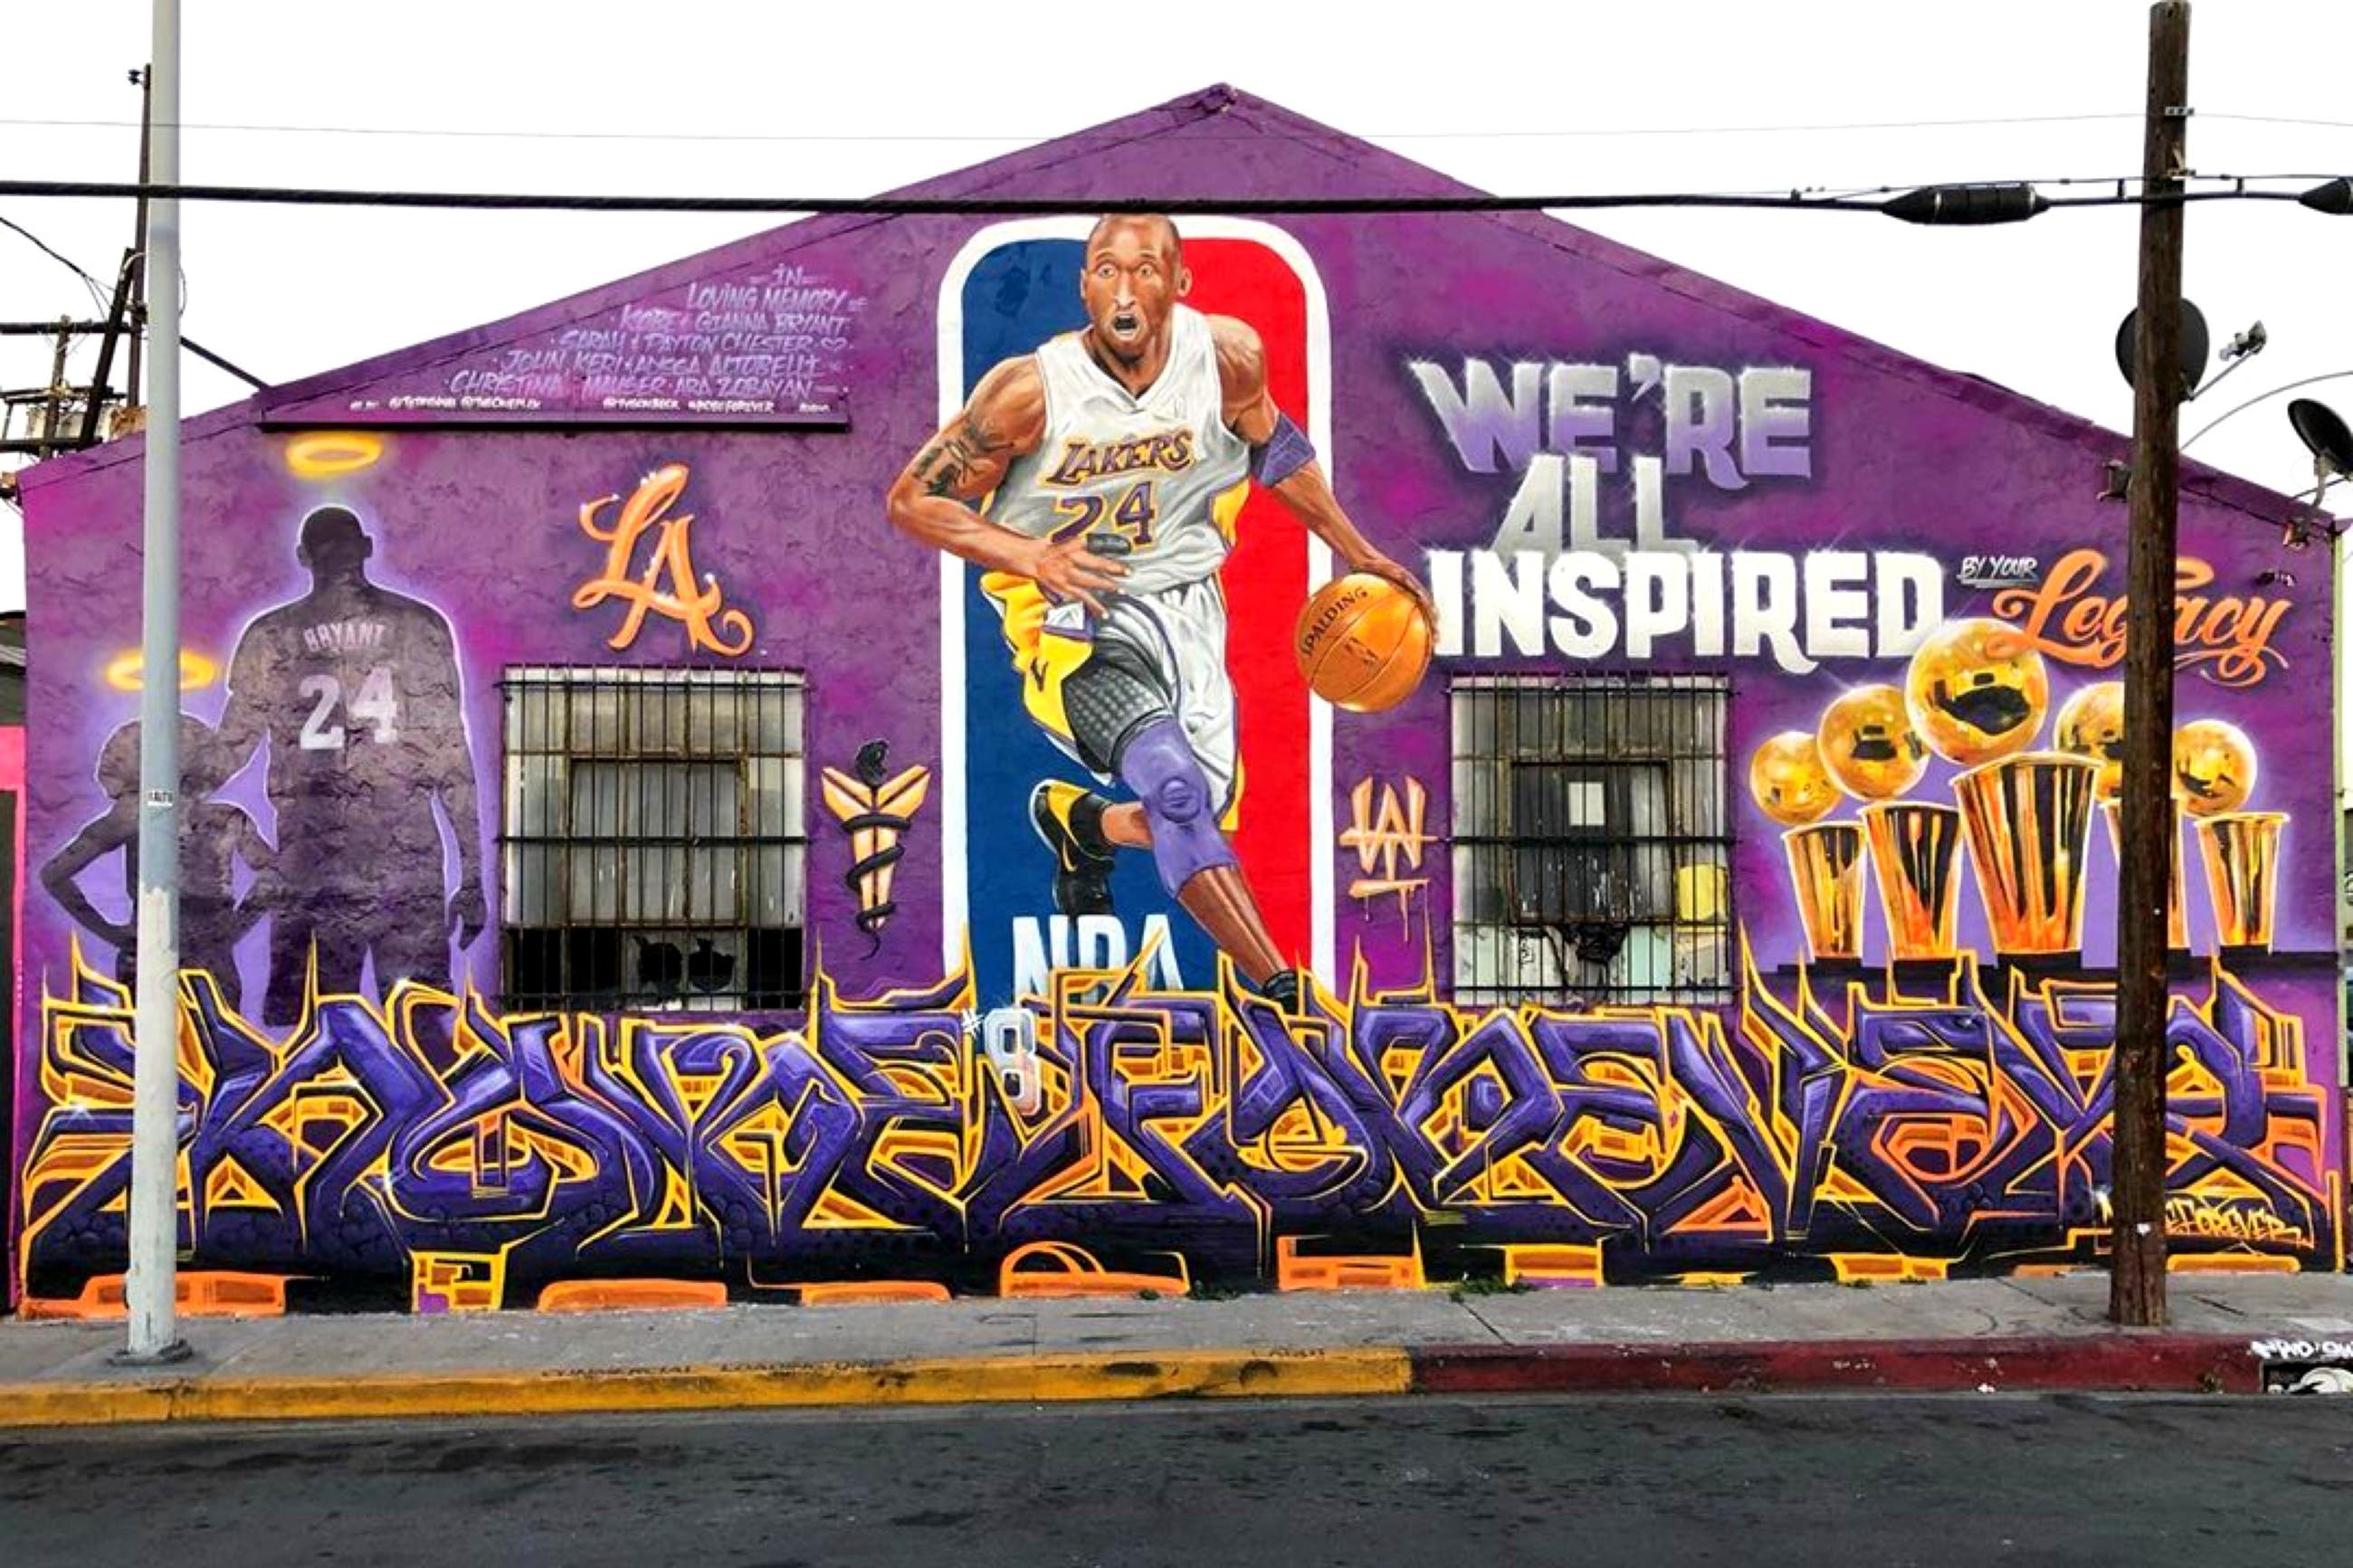 """We're All Inspired"" Kobe Bryant mural at Gopar Auto Repair in Boyle Heights"